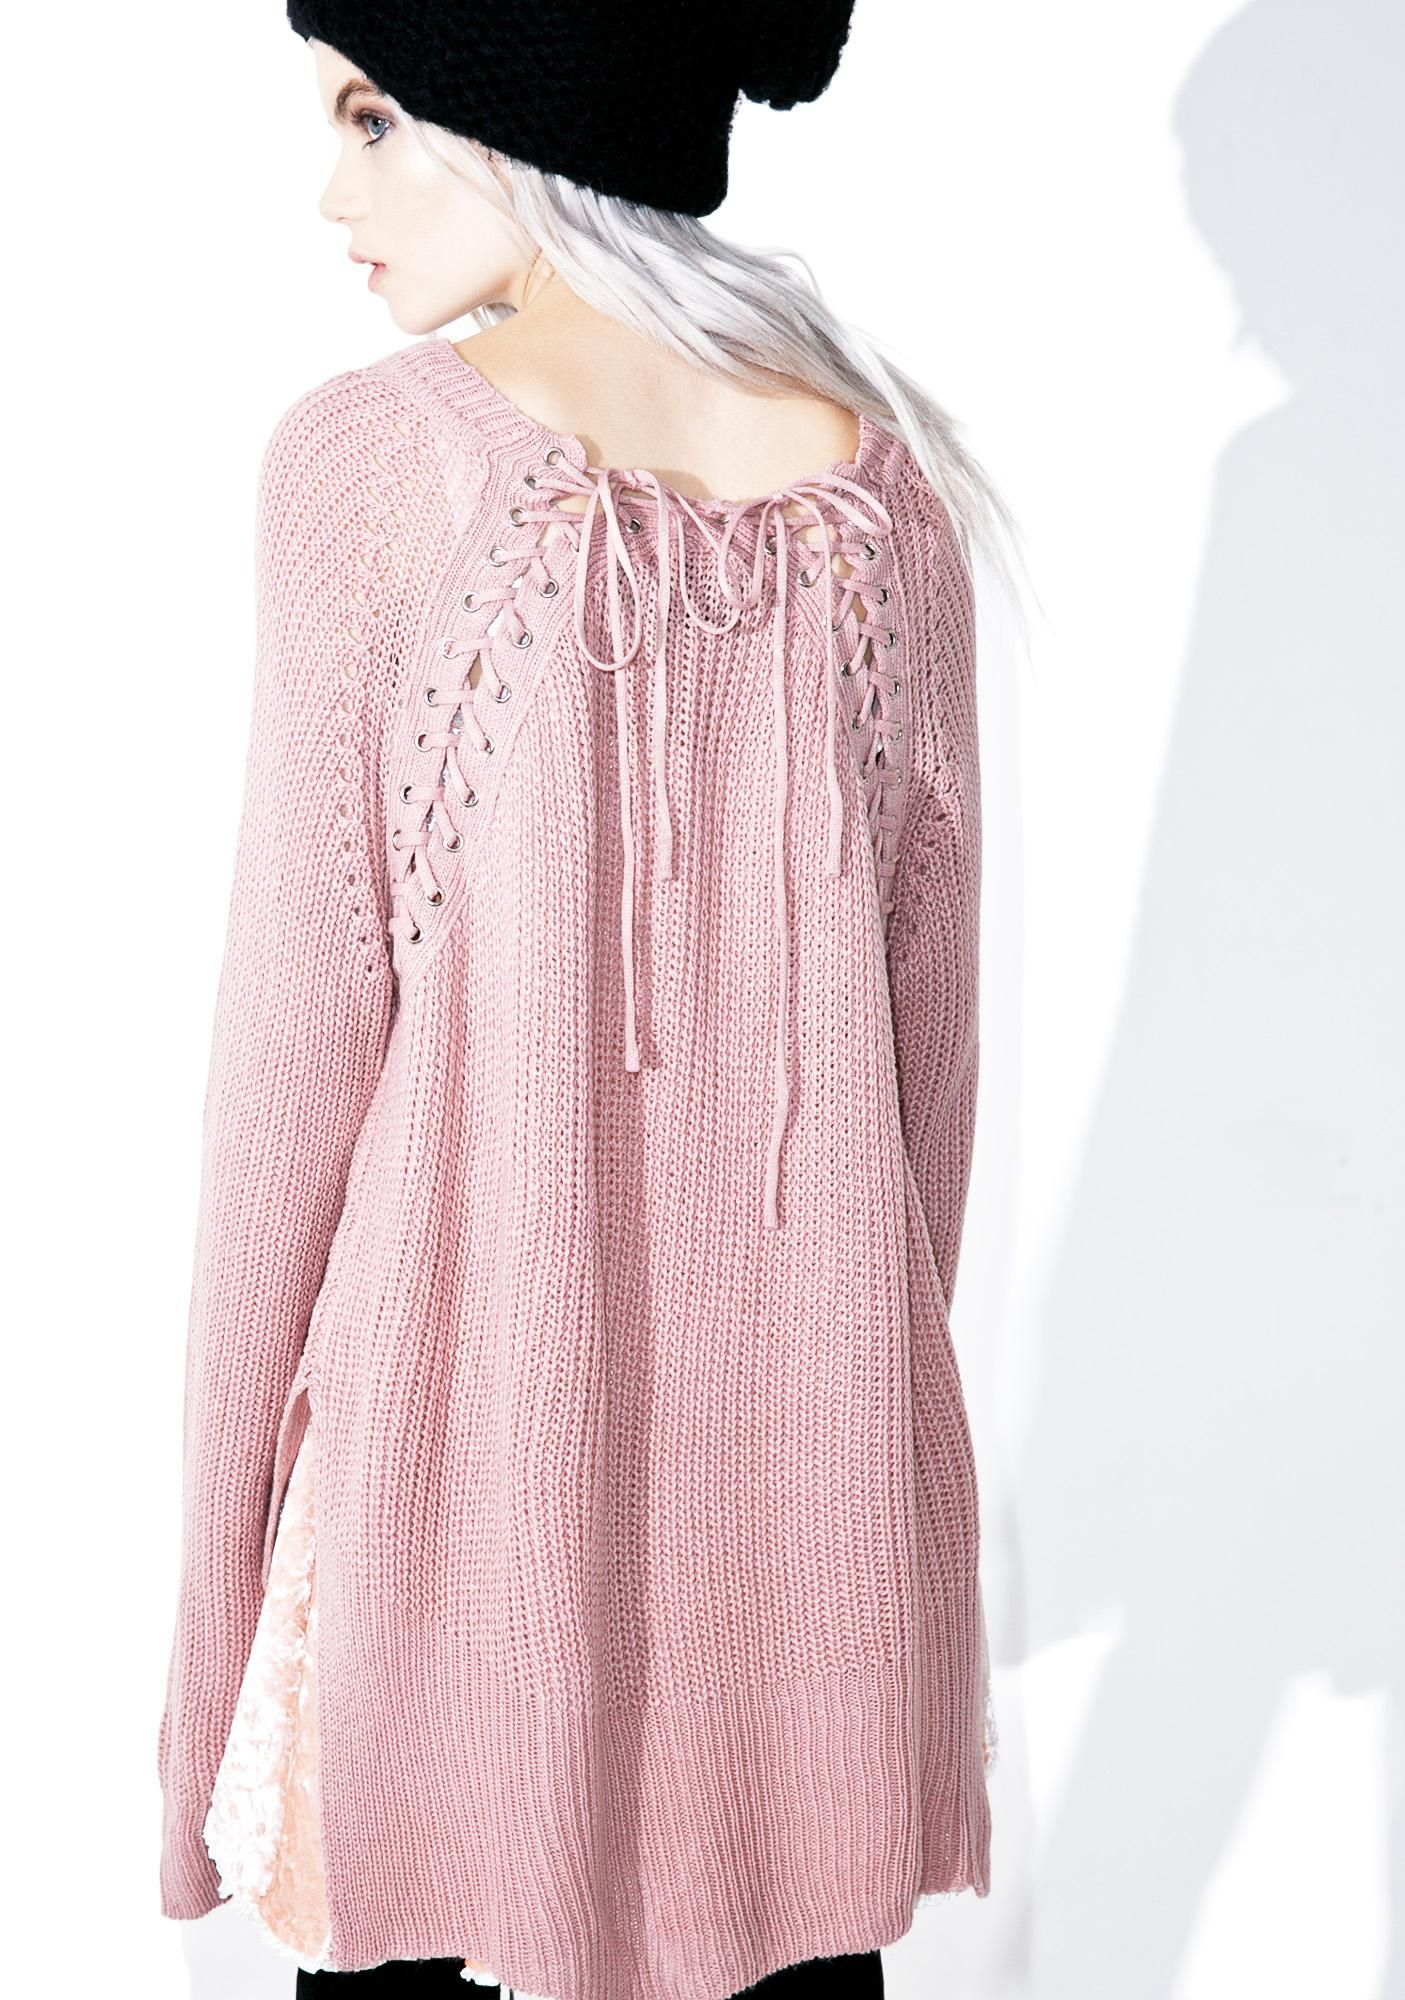 Romanticize Lace-Up Sweater cuz every time we see ya, dreams of our future together flash before our eyes… This sweet sweater features a comfy blush rib knit construction, slouchy oversized fit, rounded neckline, high-low cut, and lace-up detailing across the top of the back.